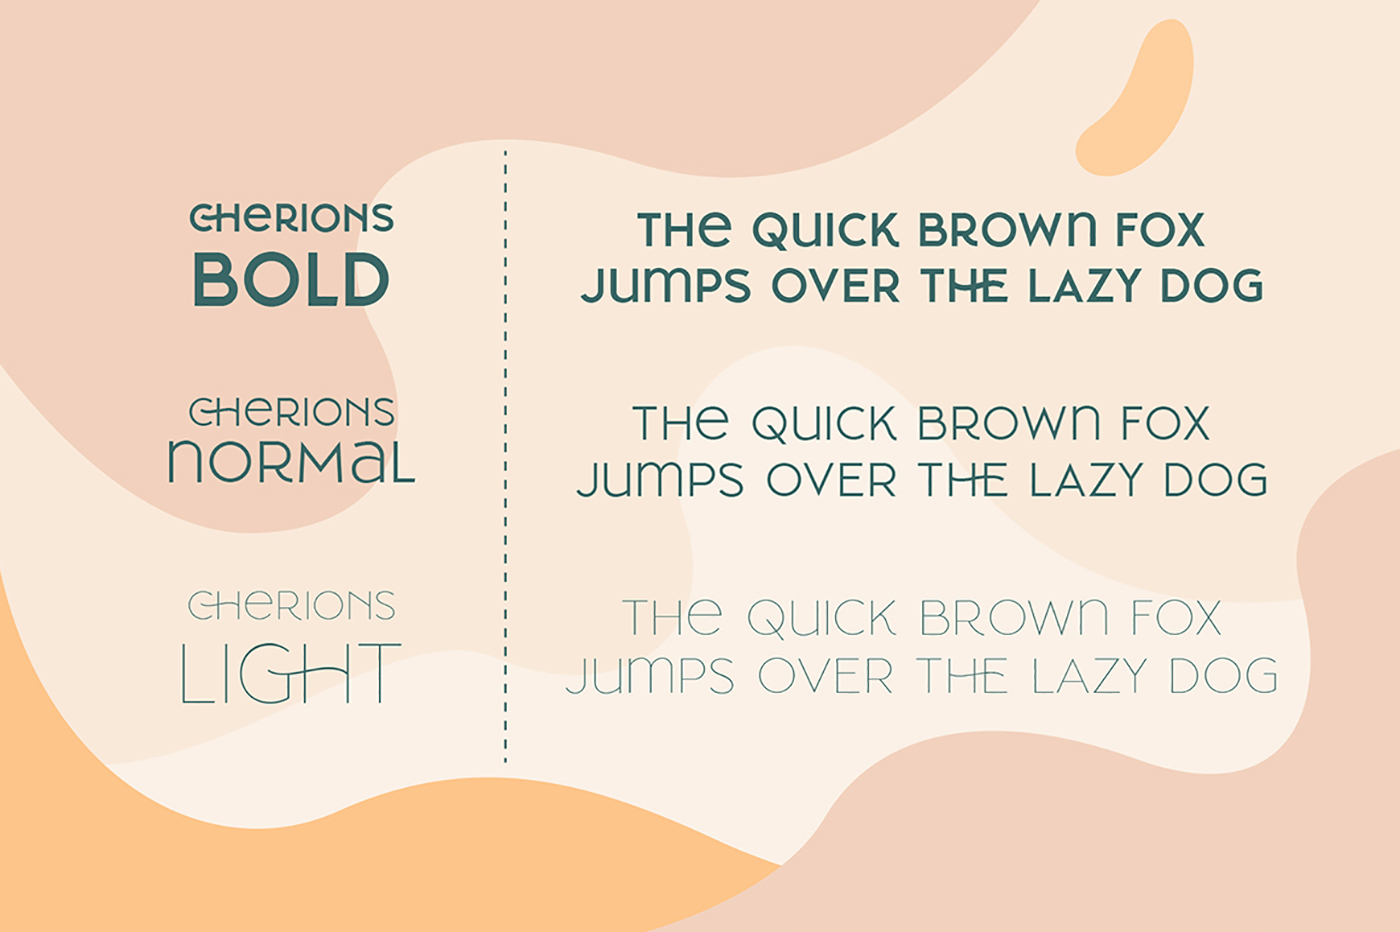 Cherione font family consists of 3 weights: Light, Normal, and Bold